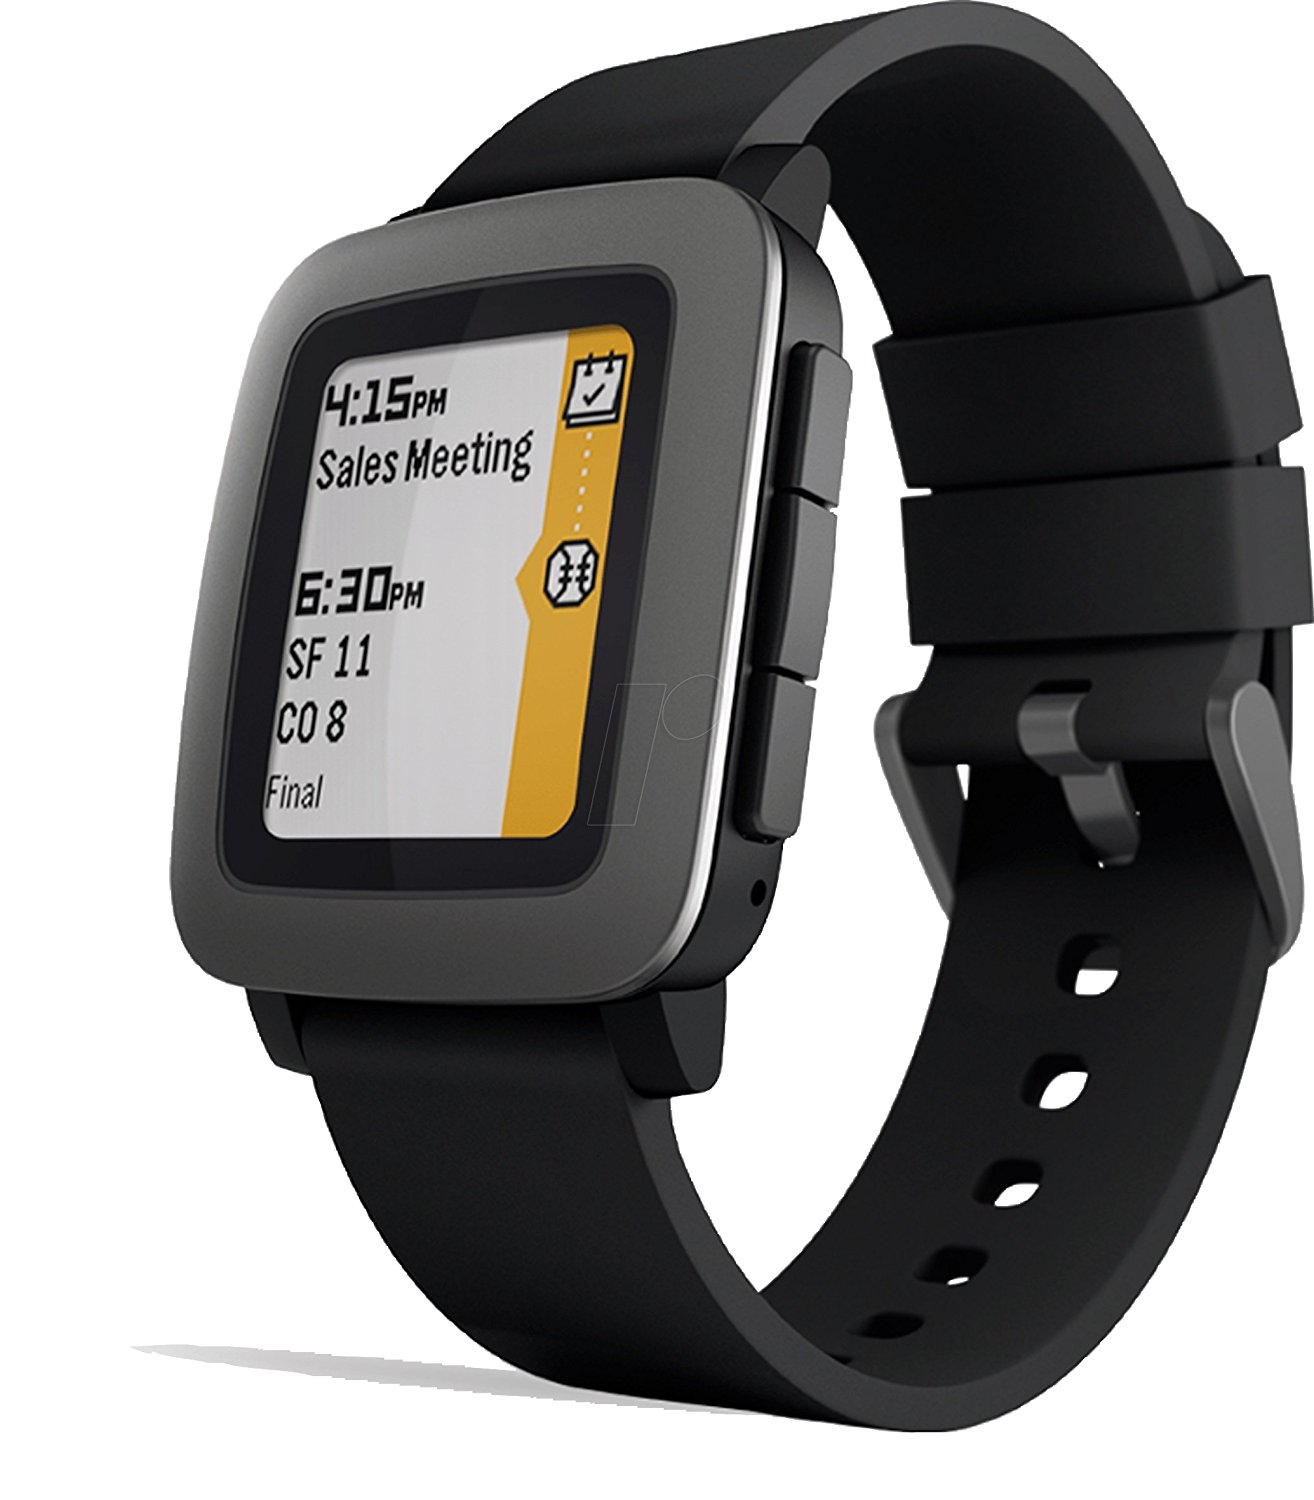 Pebble time black smart watch for iphone android with activity tracker for Pebble watches